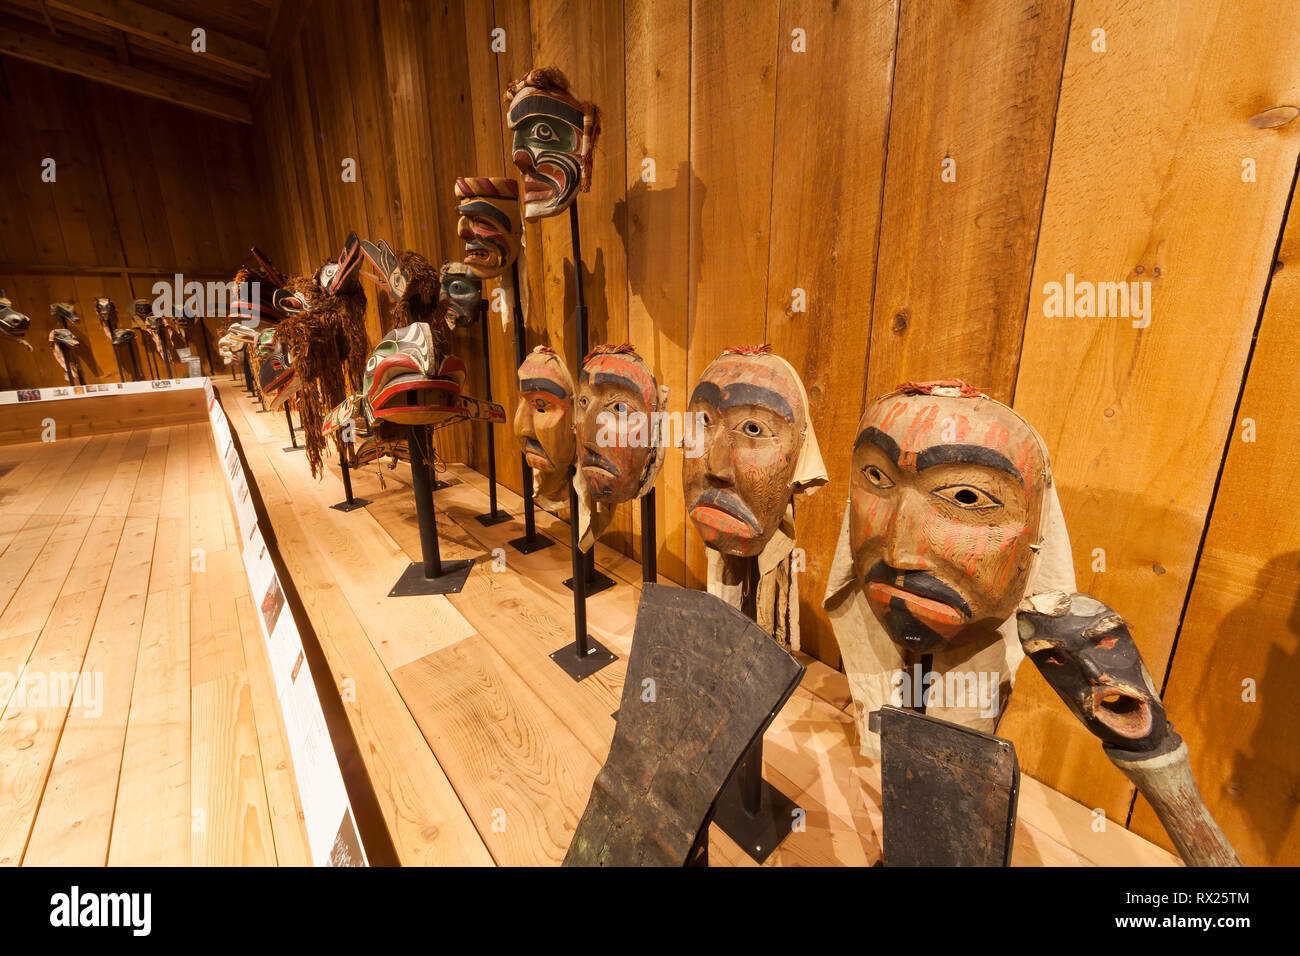 First Nations culture comes alive at the U'mista Cultural Centre where displays of priceless Kwakwaka'wakw masks and cultural icons are on display.  A - Stock Image